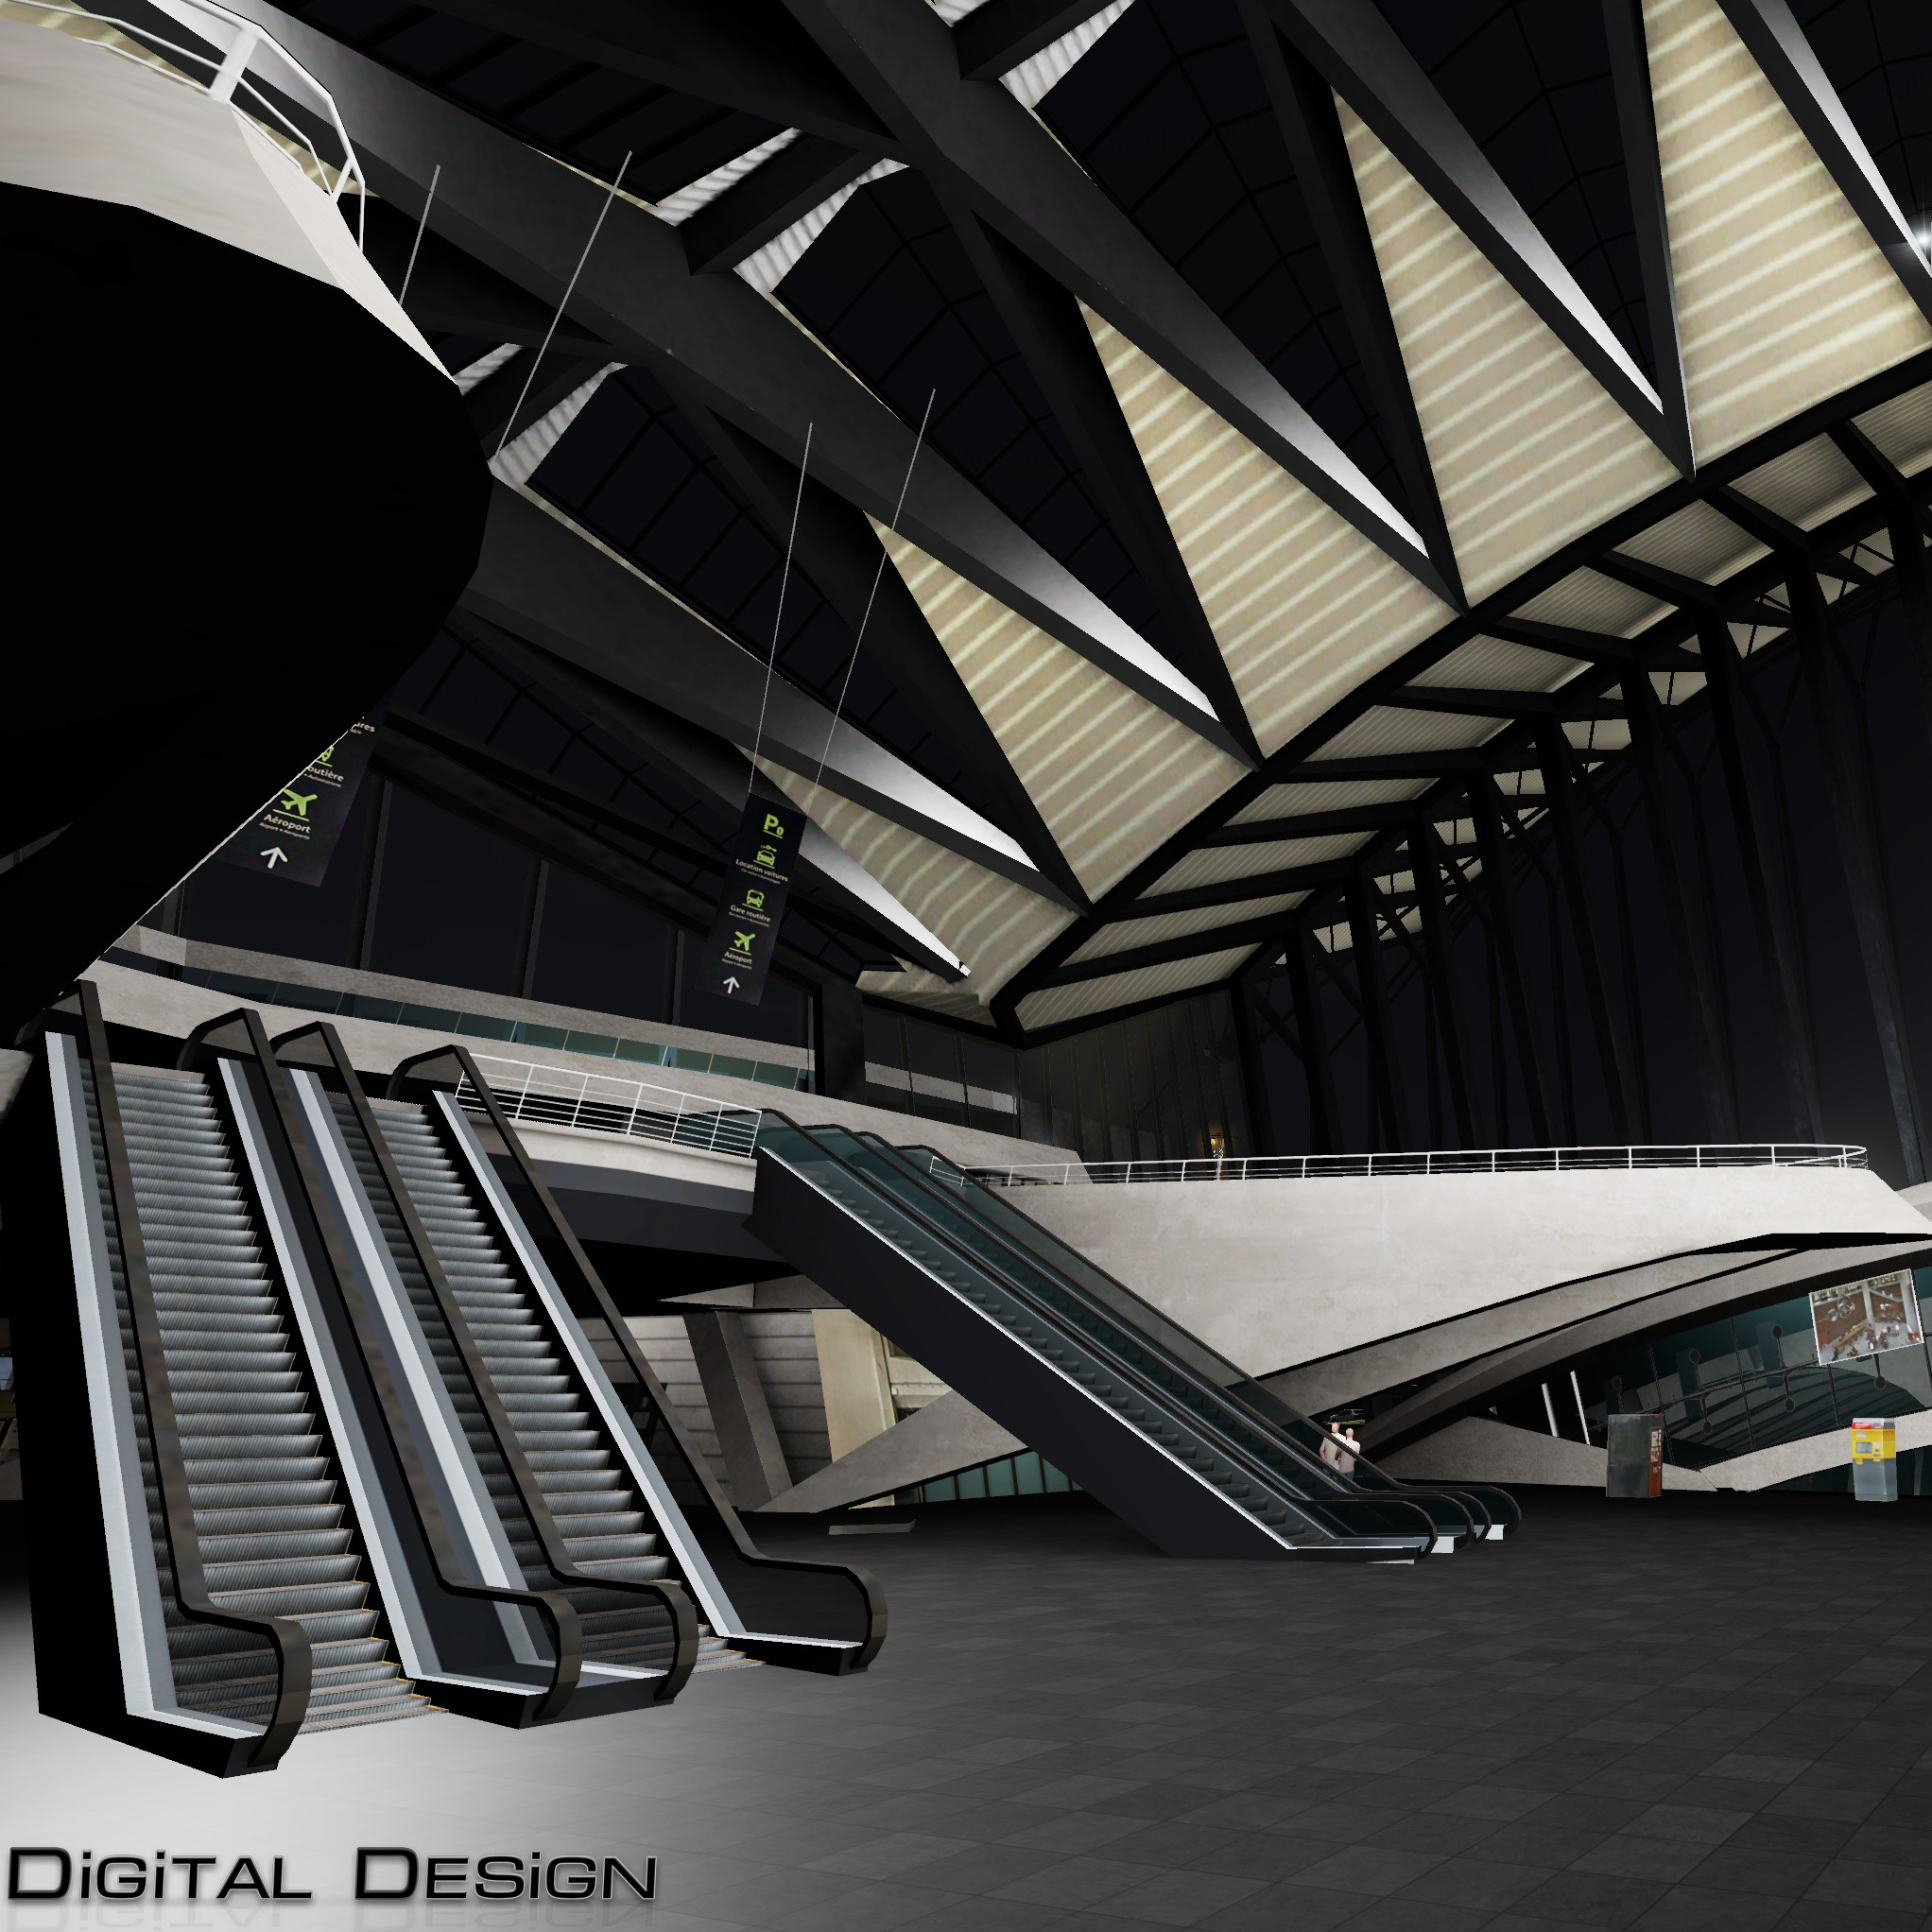 DIGITAL DESIGN - LYON-SAINT EXUPERY P3D